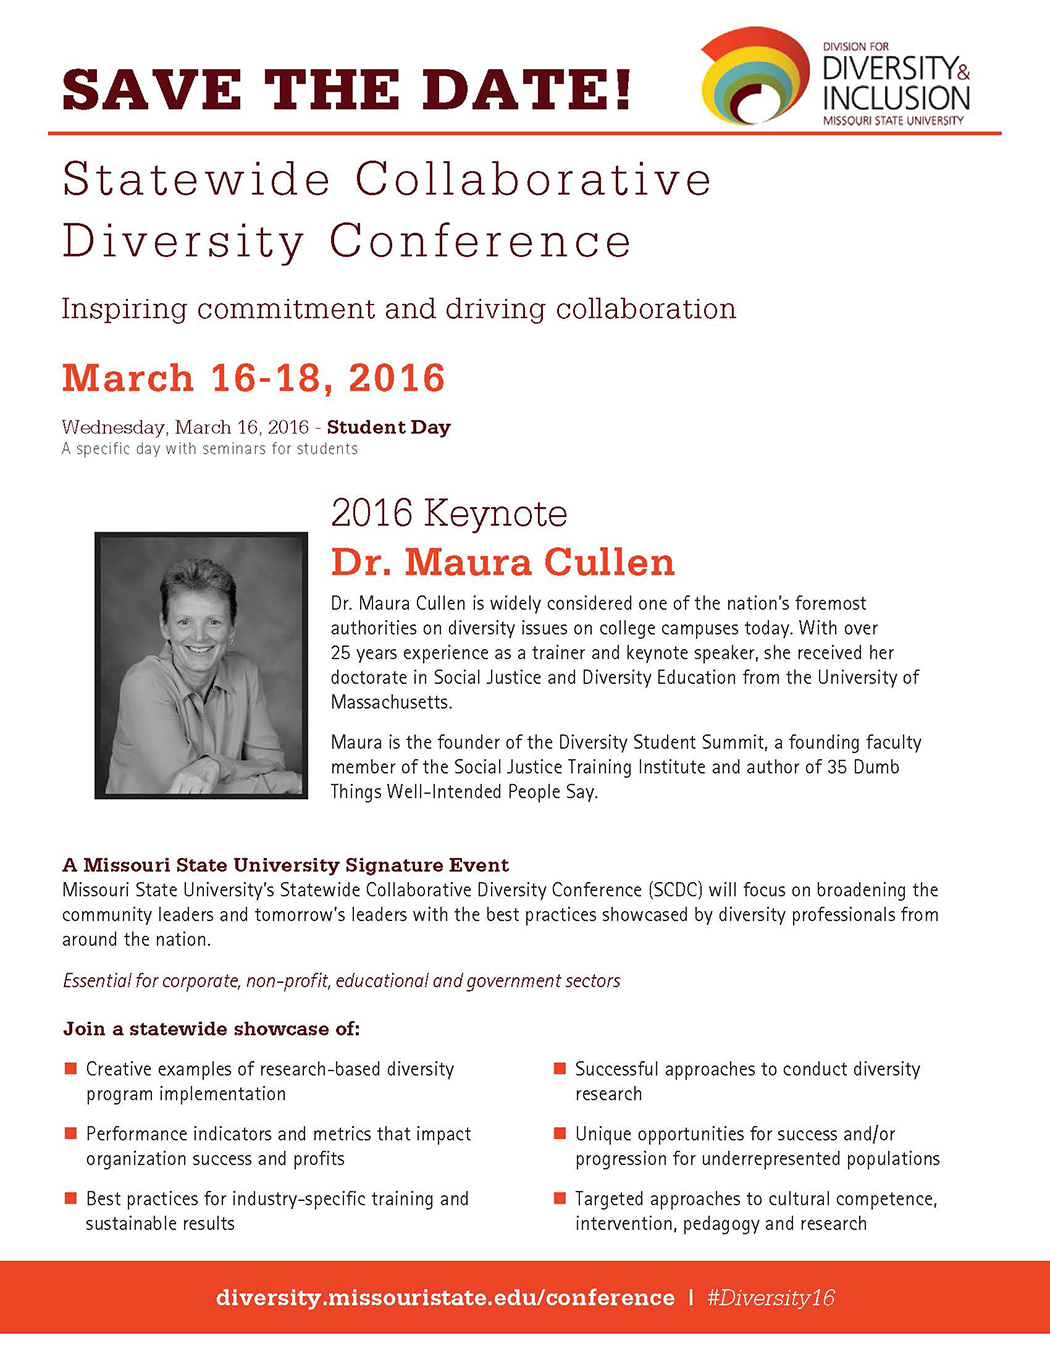 SAVE THE DATE! 2016 Statewide Collaborative Diversity Conference